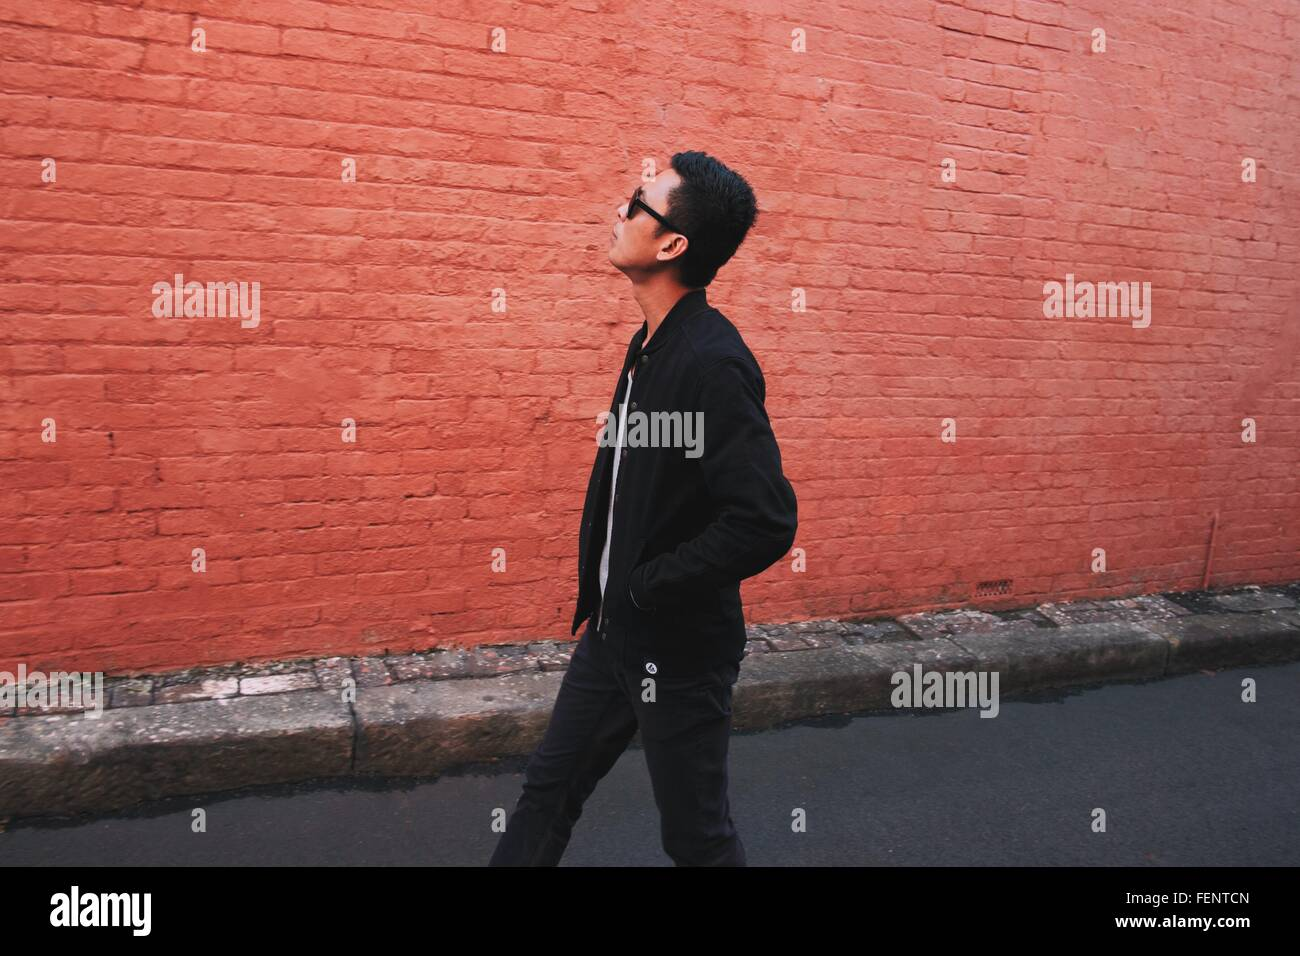 Side View Of Fashionable Young Man Walking On Street Against Red Brick Wall - Stock Image